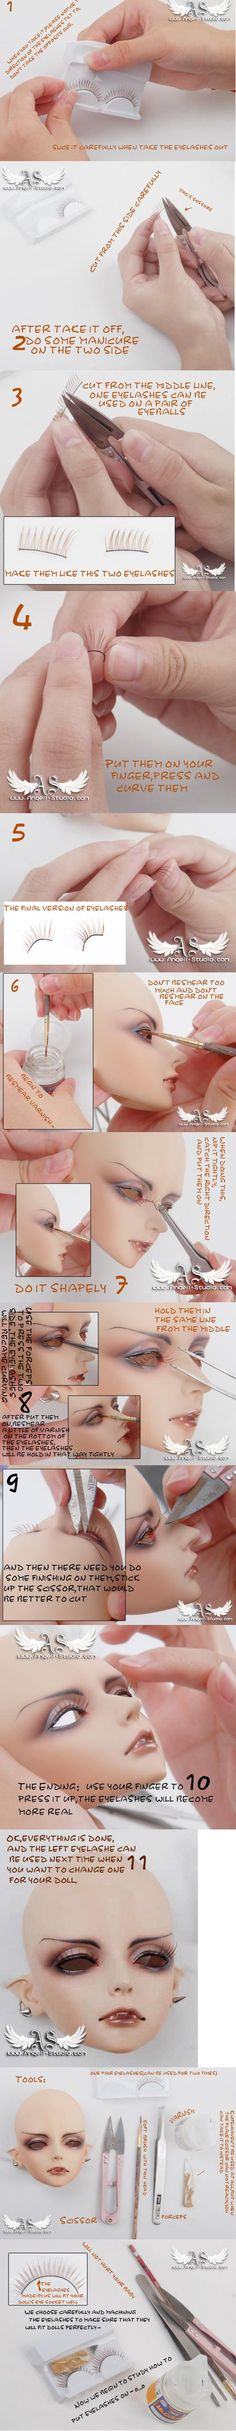 Eyelashes Attaching for dolls by Angell-studio.deviantart.com on @deviantART